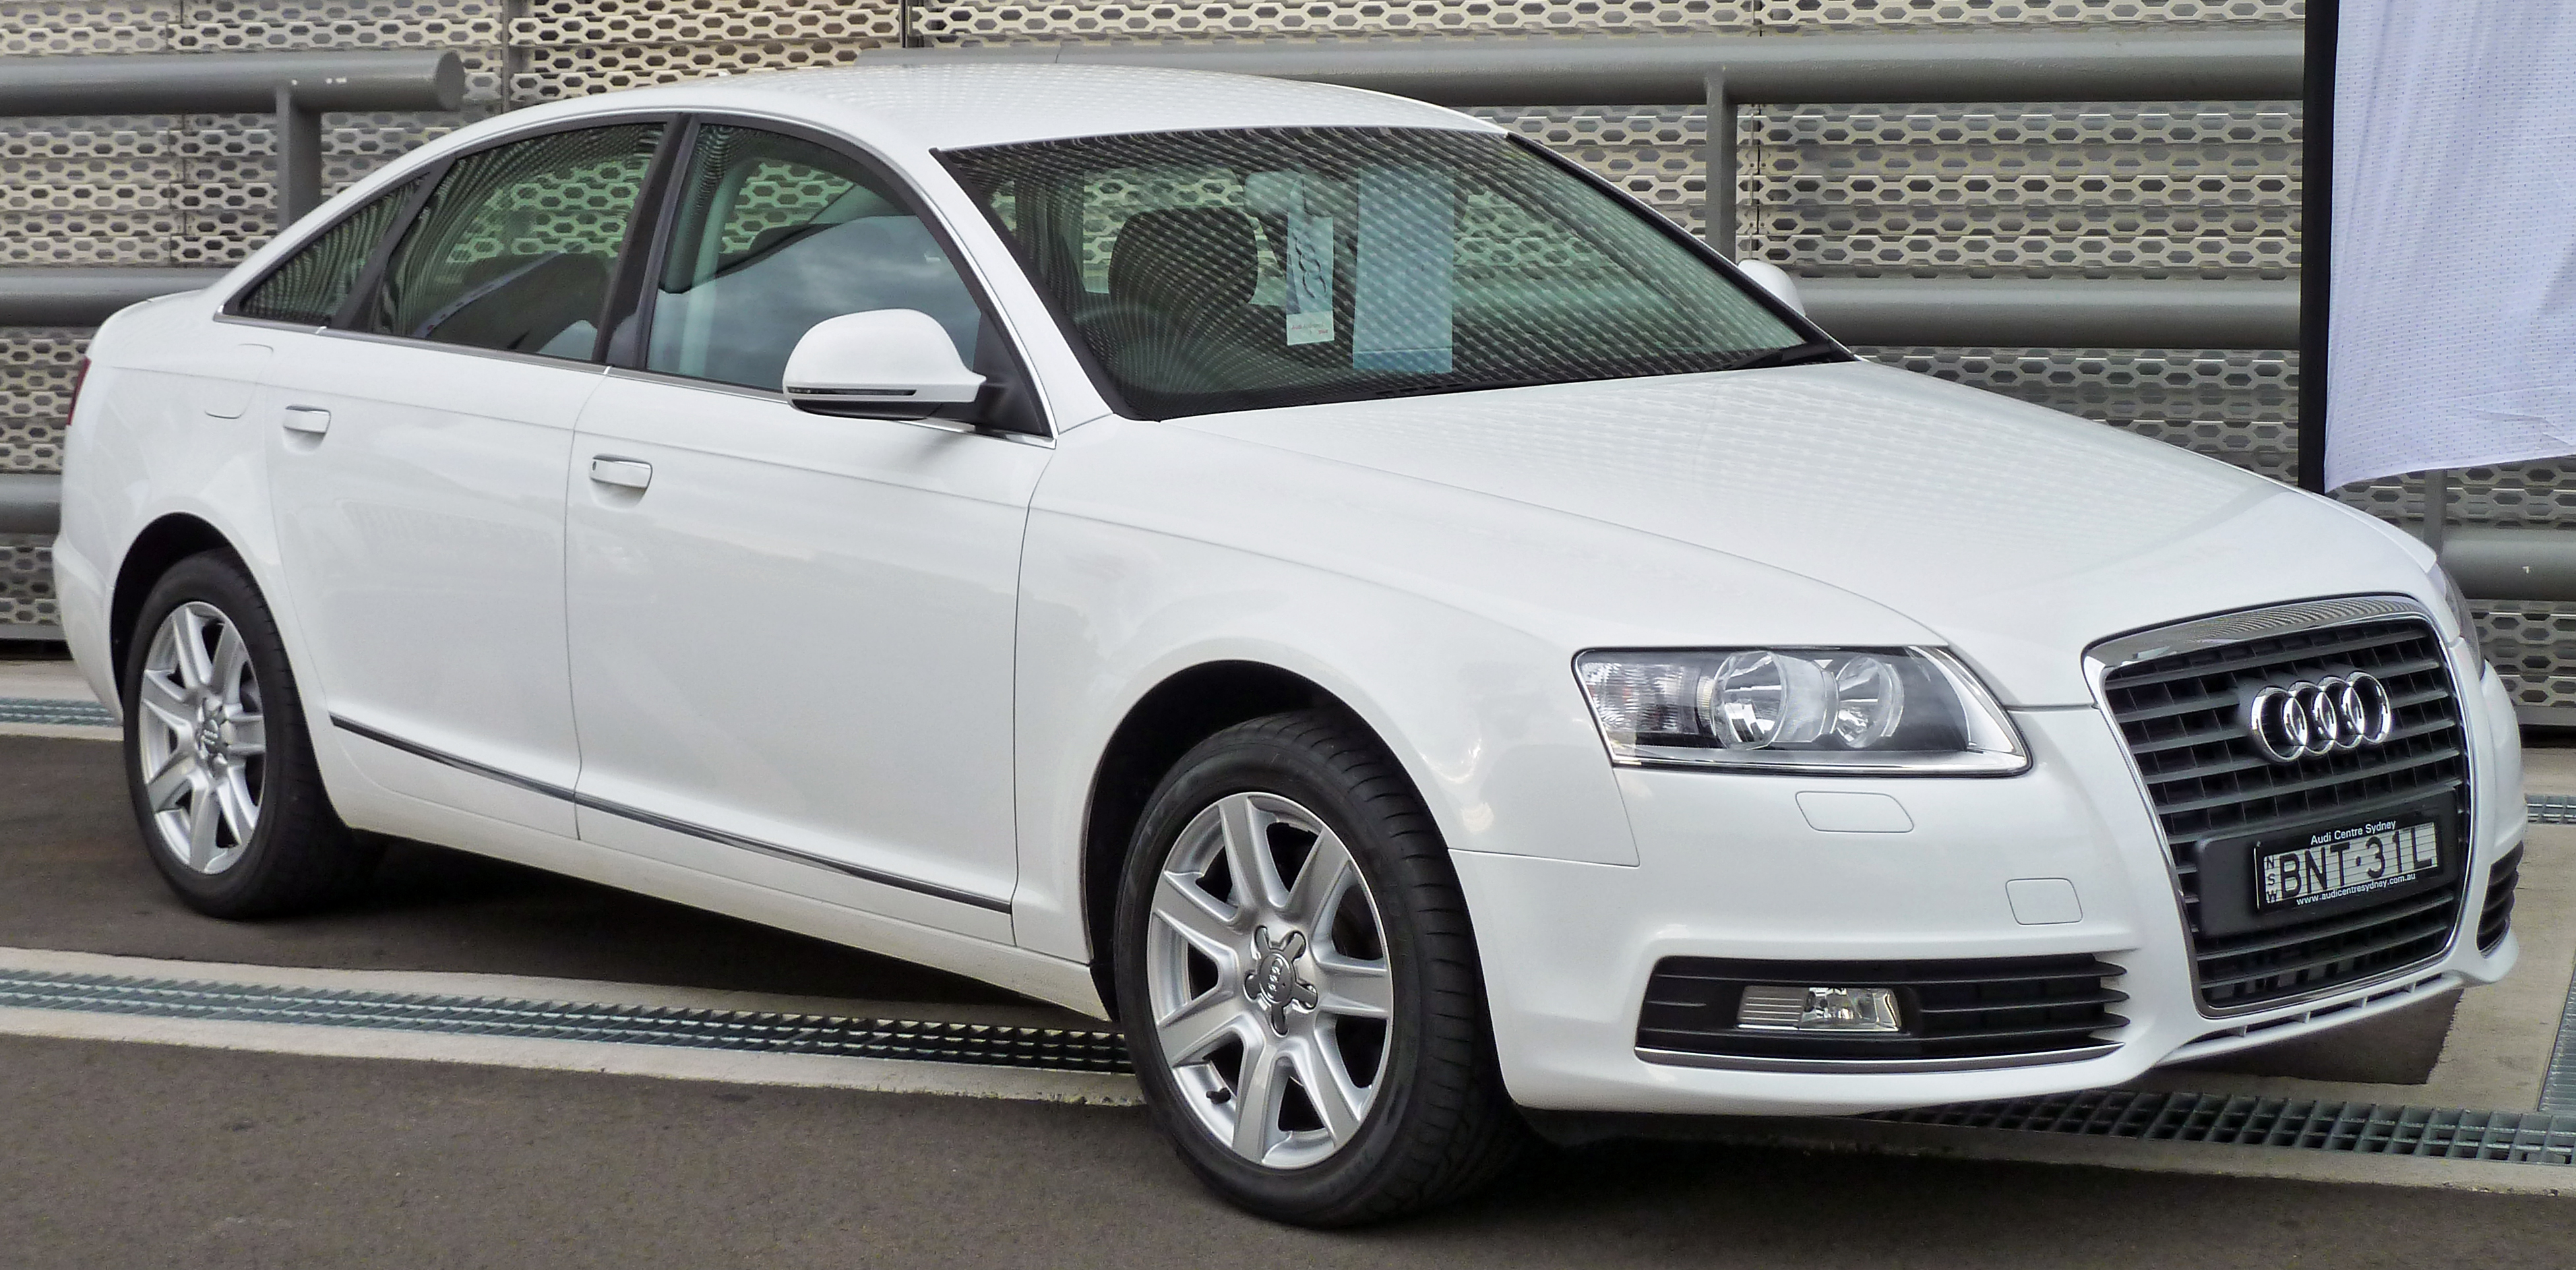 2005 audi a6 2 0 tfsi c6 related infomation specifications. Black Bedroom Furniture Sets. Home Design Ideas